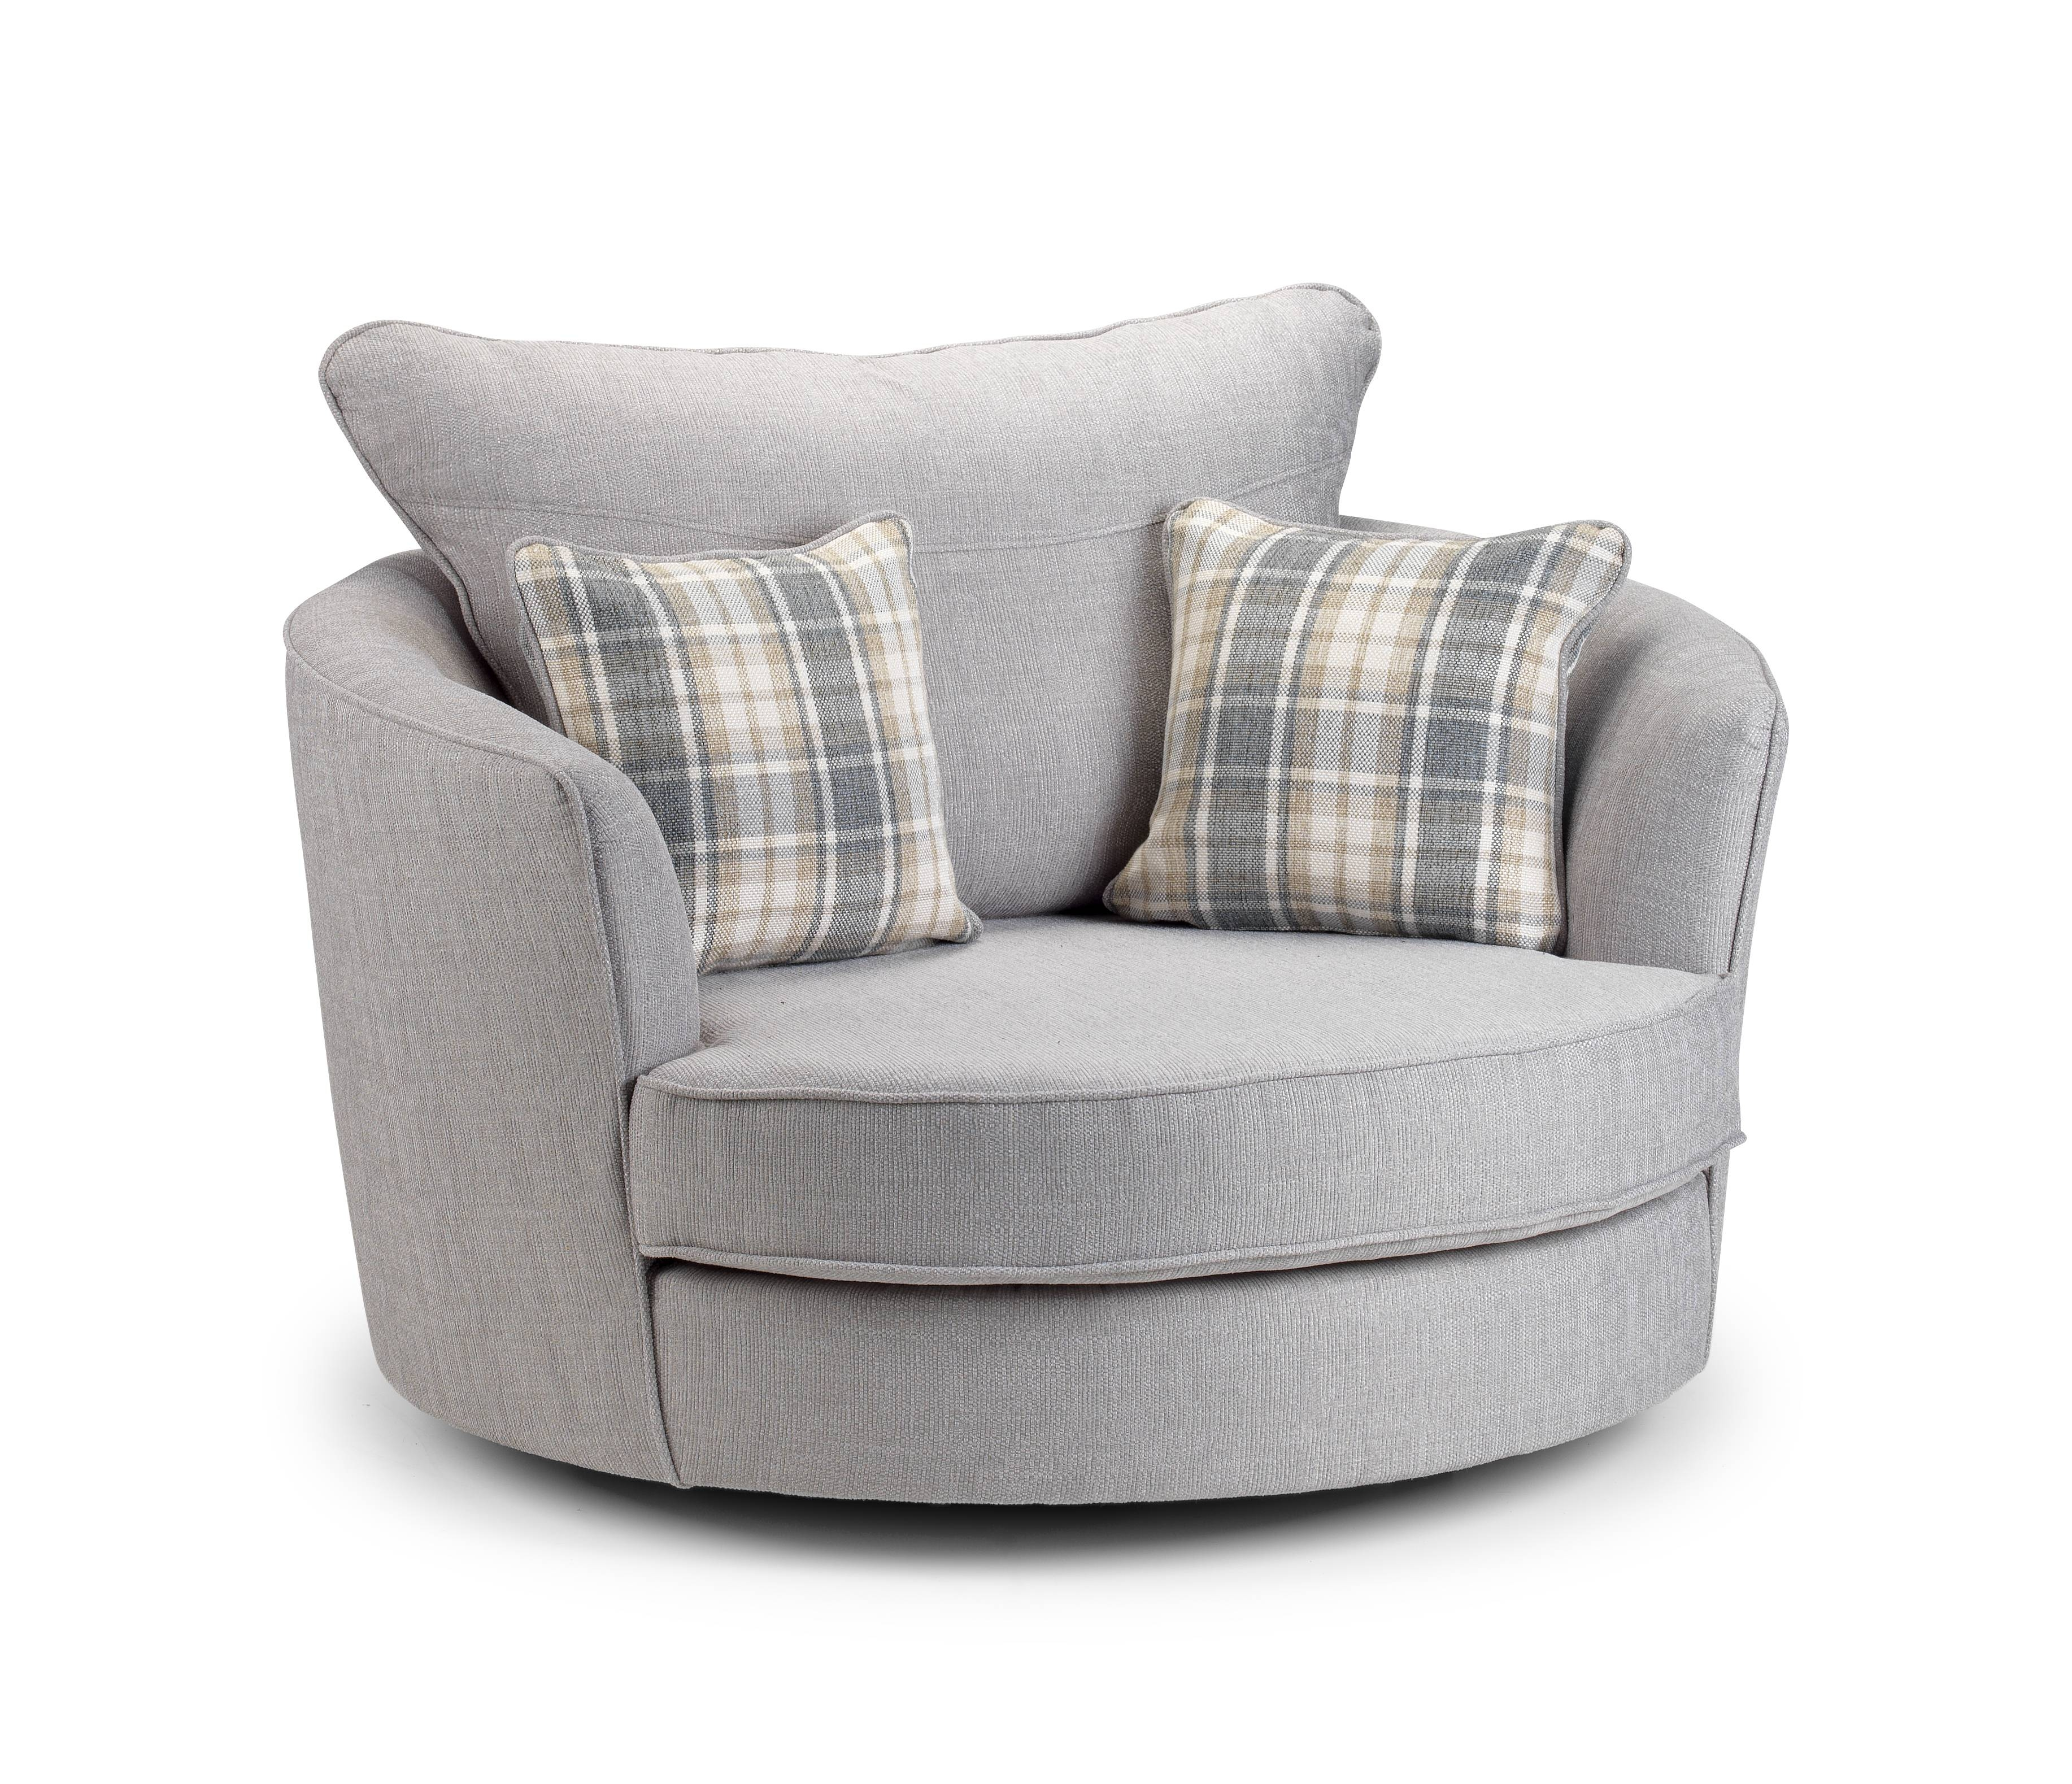 Sofas Center : Shocking Round Sofa Chair Picture Concept Nice intended for Chair Sofas (Image 21 of 30)